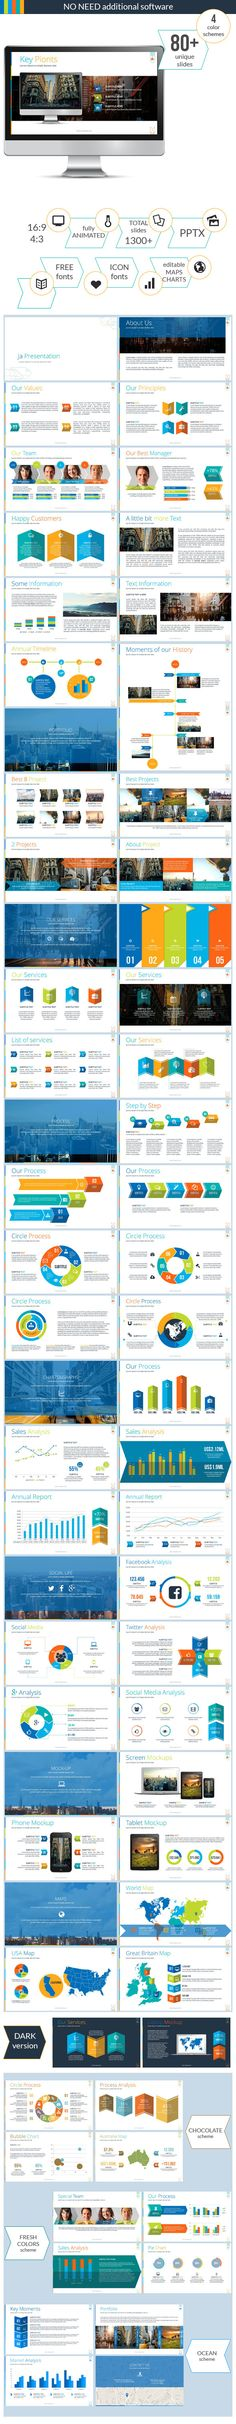 H2 Plus Multipurpose PowerPoint Presentation Template Http\/\/www - interactive powerpoint template